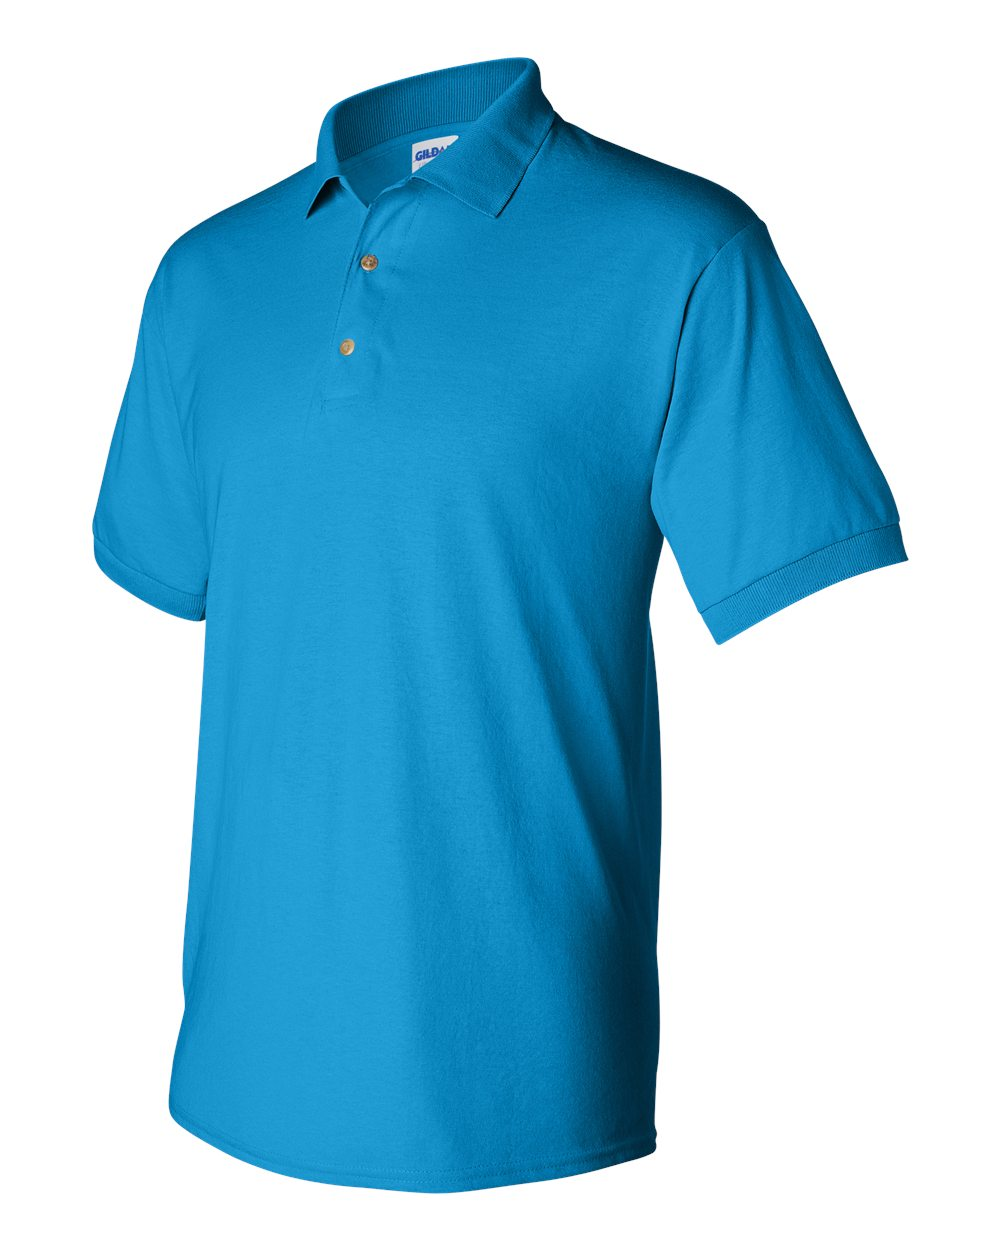 Northside Sapphire Blue Polo